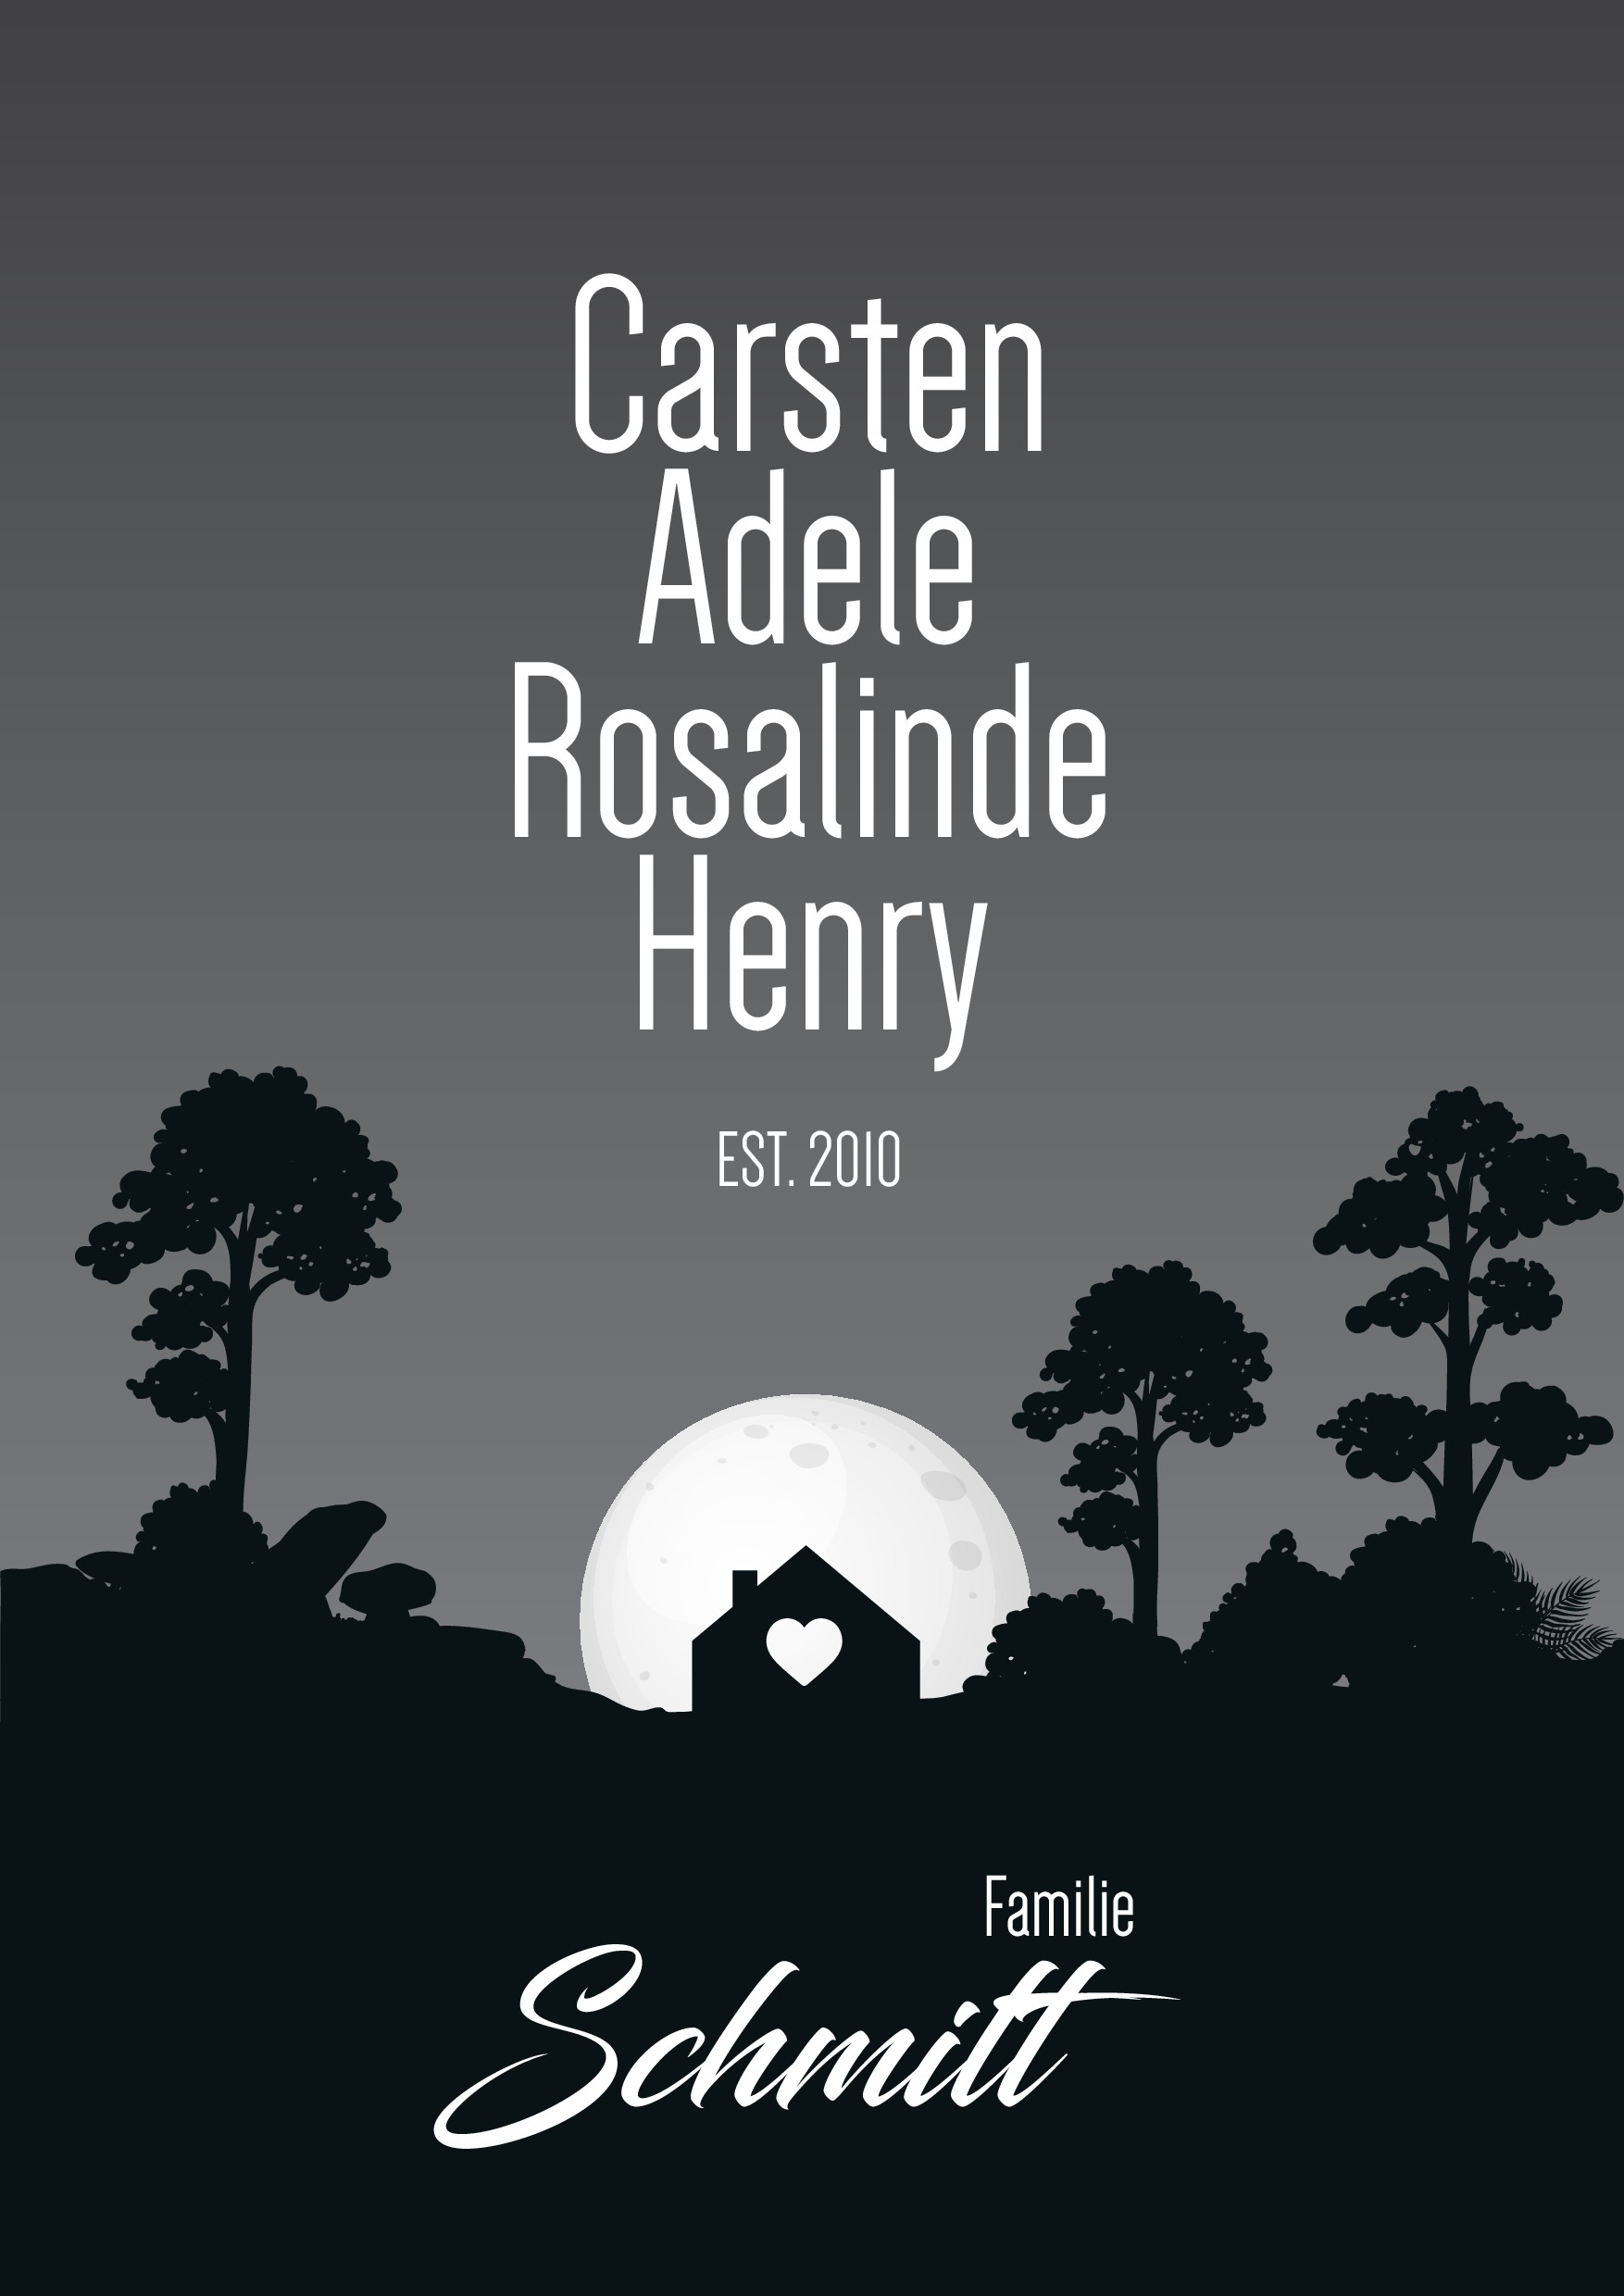 Family poster that touches hearts